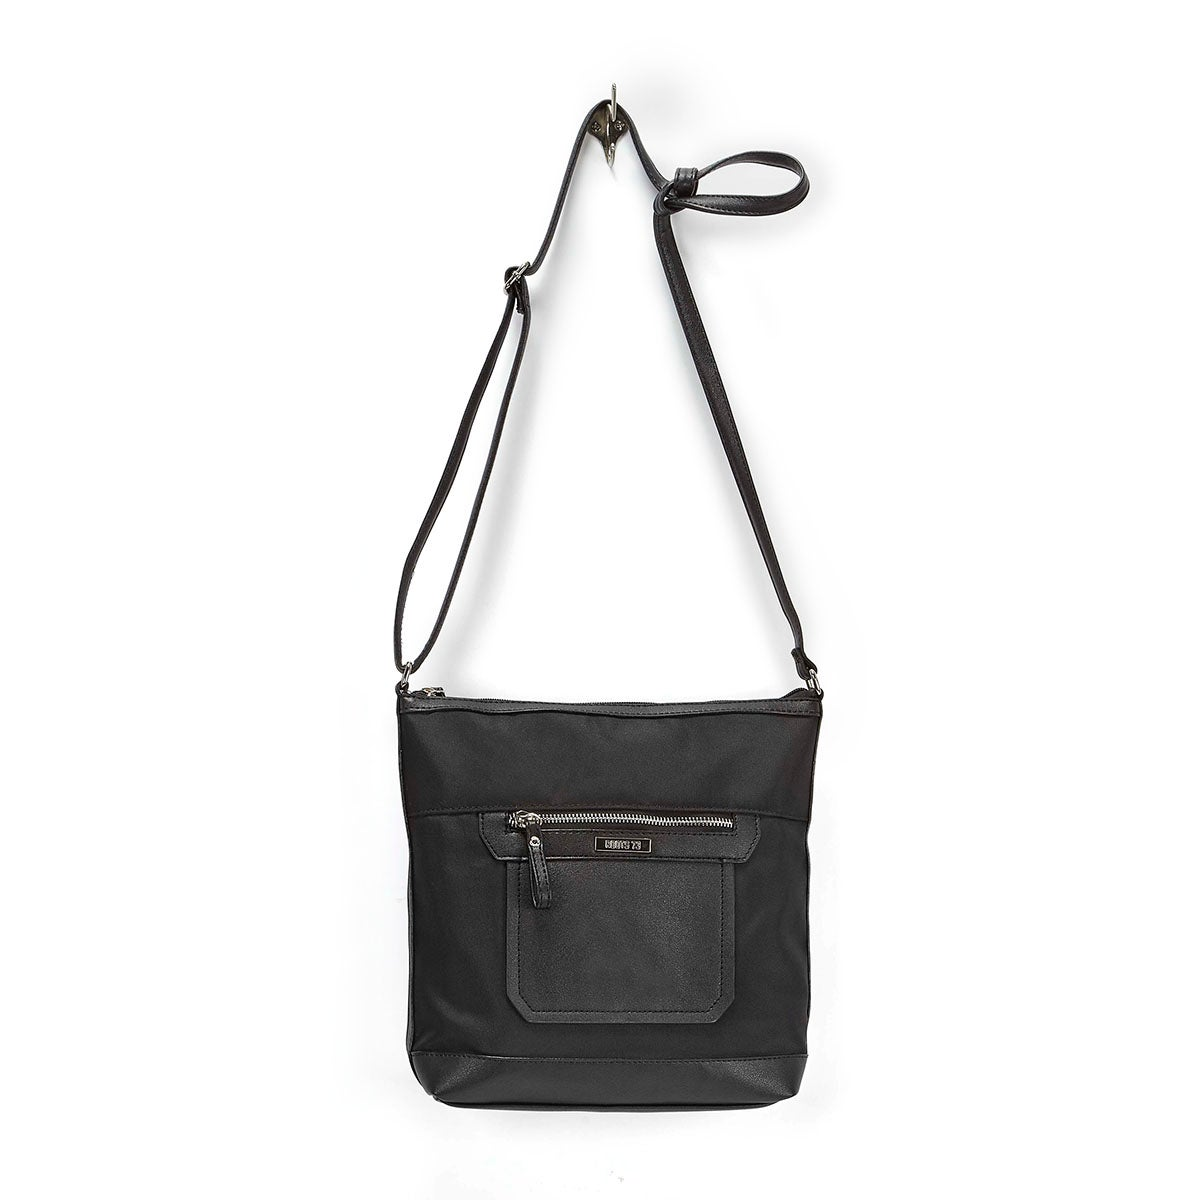 Lds Roots73 black front pocket crossbody